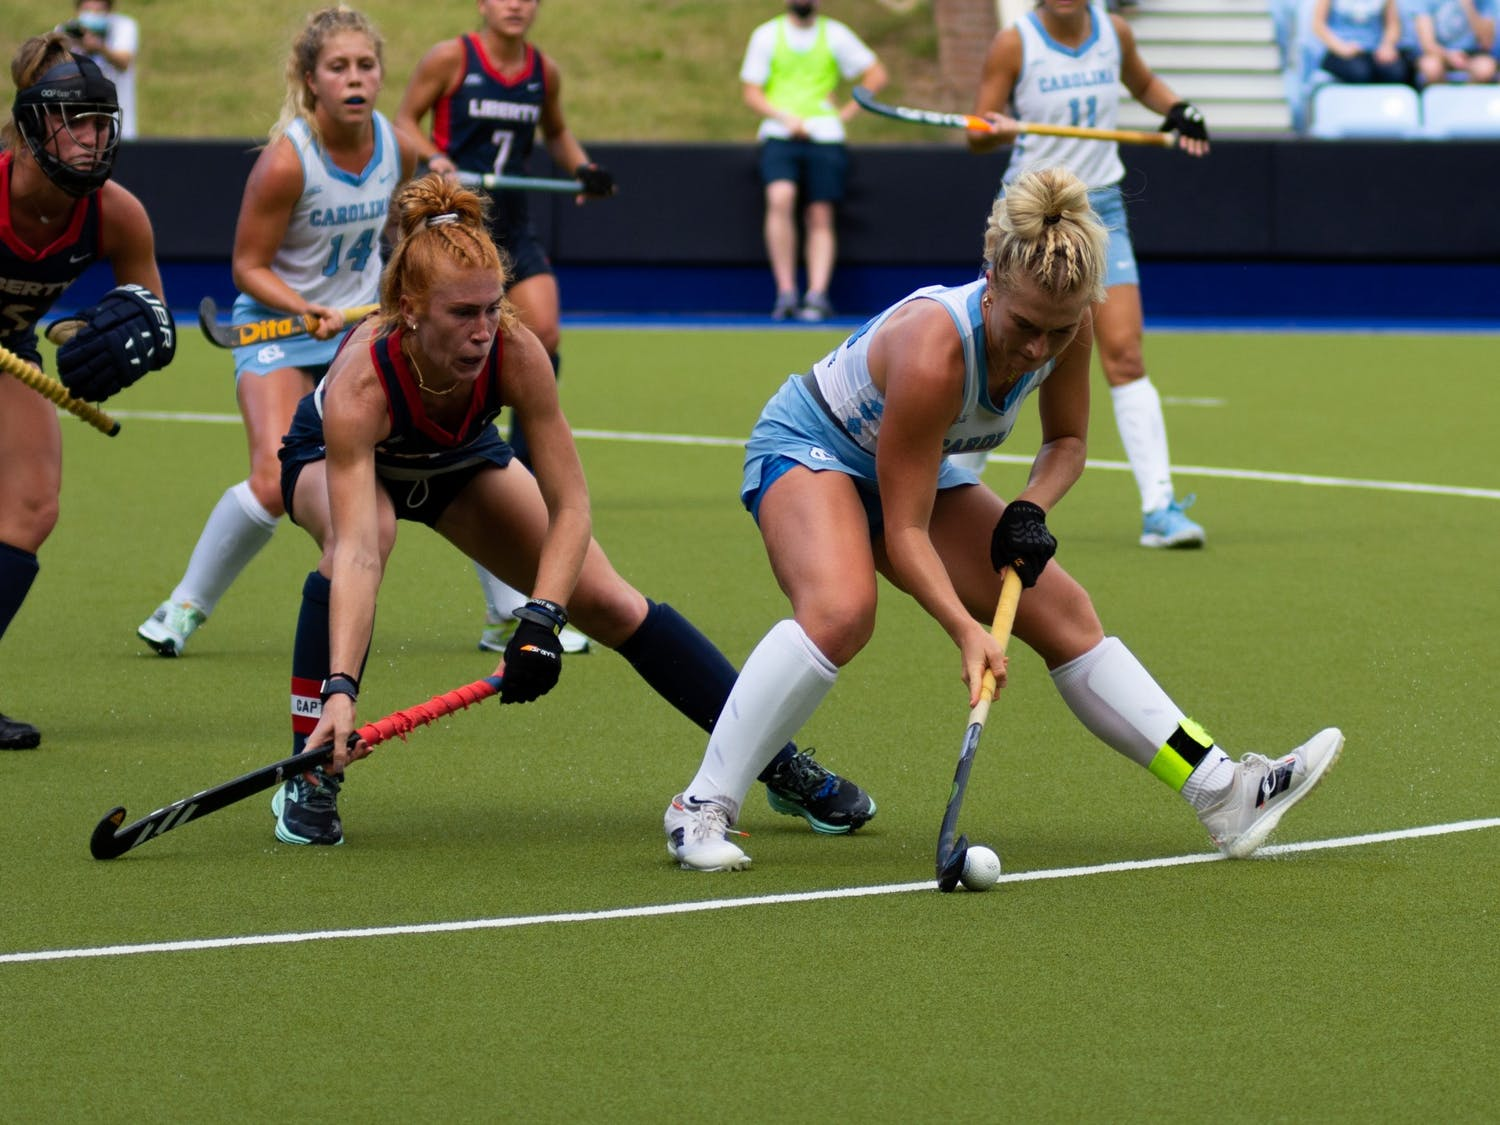 Senior midfielder Cassie Sumfest (12) defends the ball during UNC's Oct. 10 field hockey game against Liberty. The game proved to be a loss for the Tar Heels–Liberty headed home with a 4-0 win.